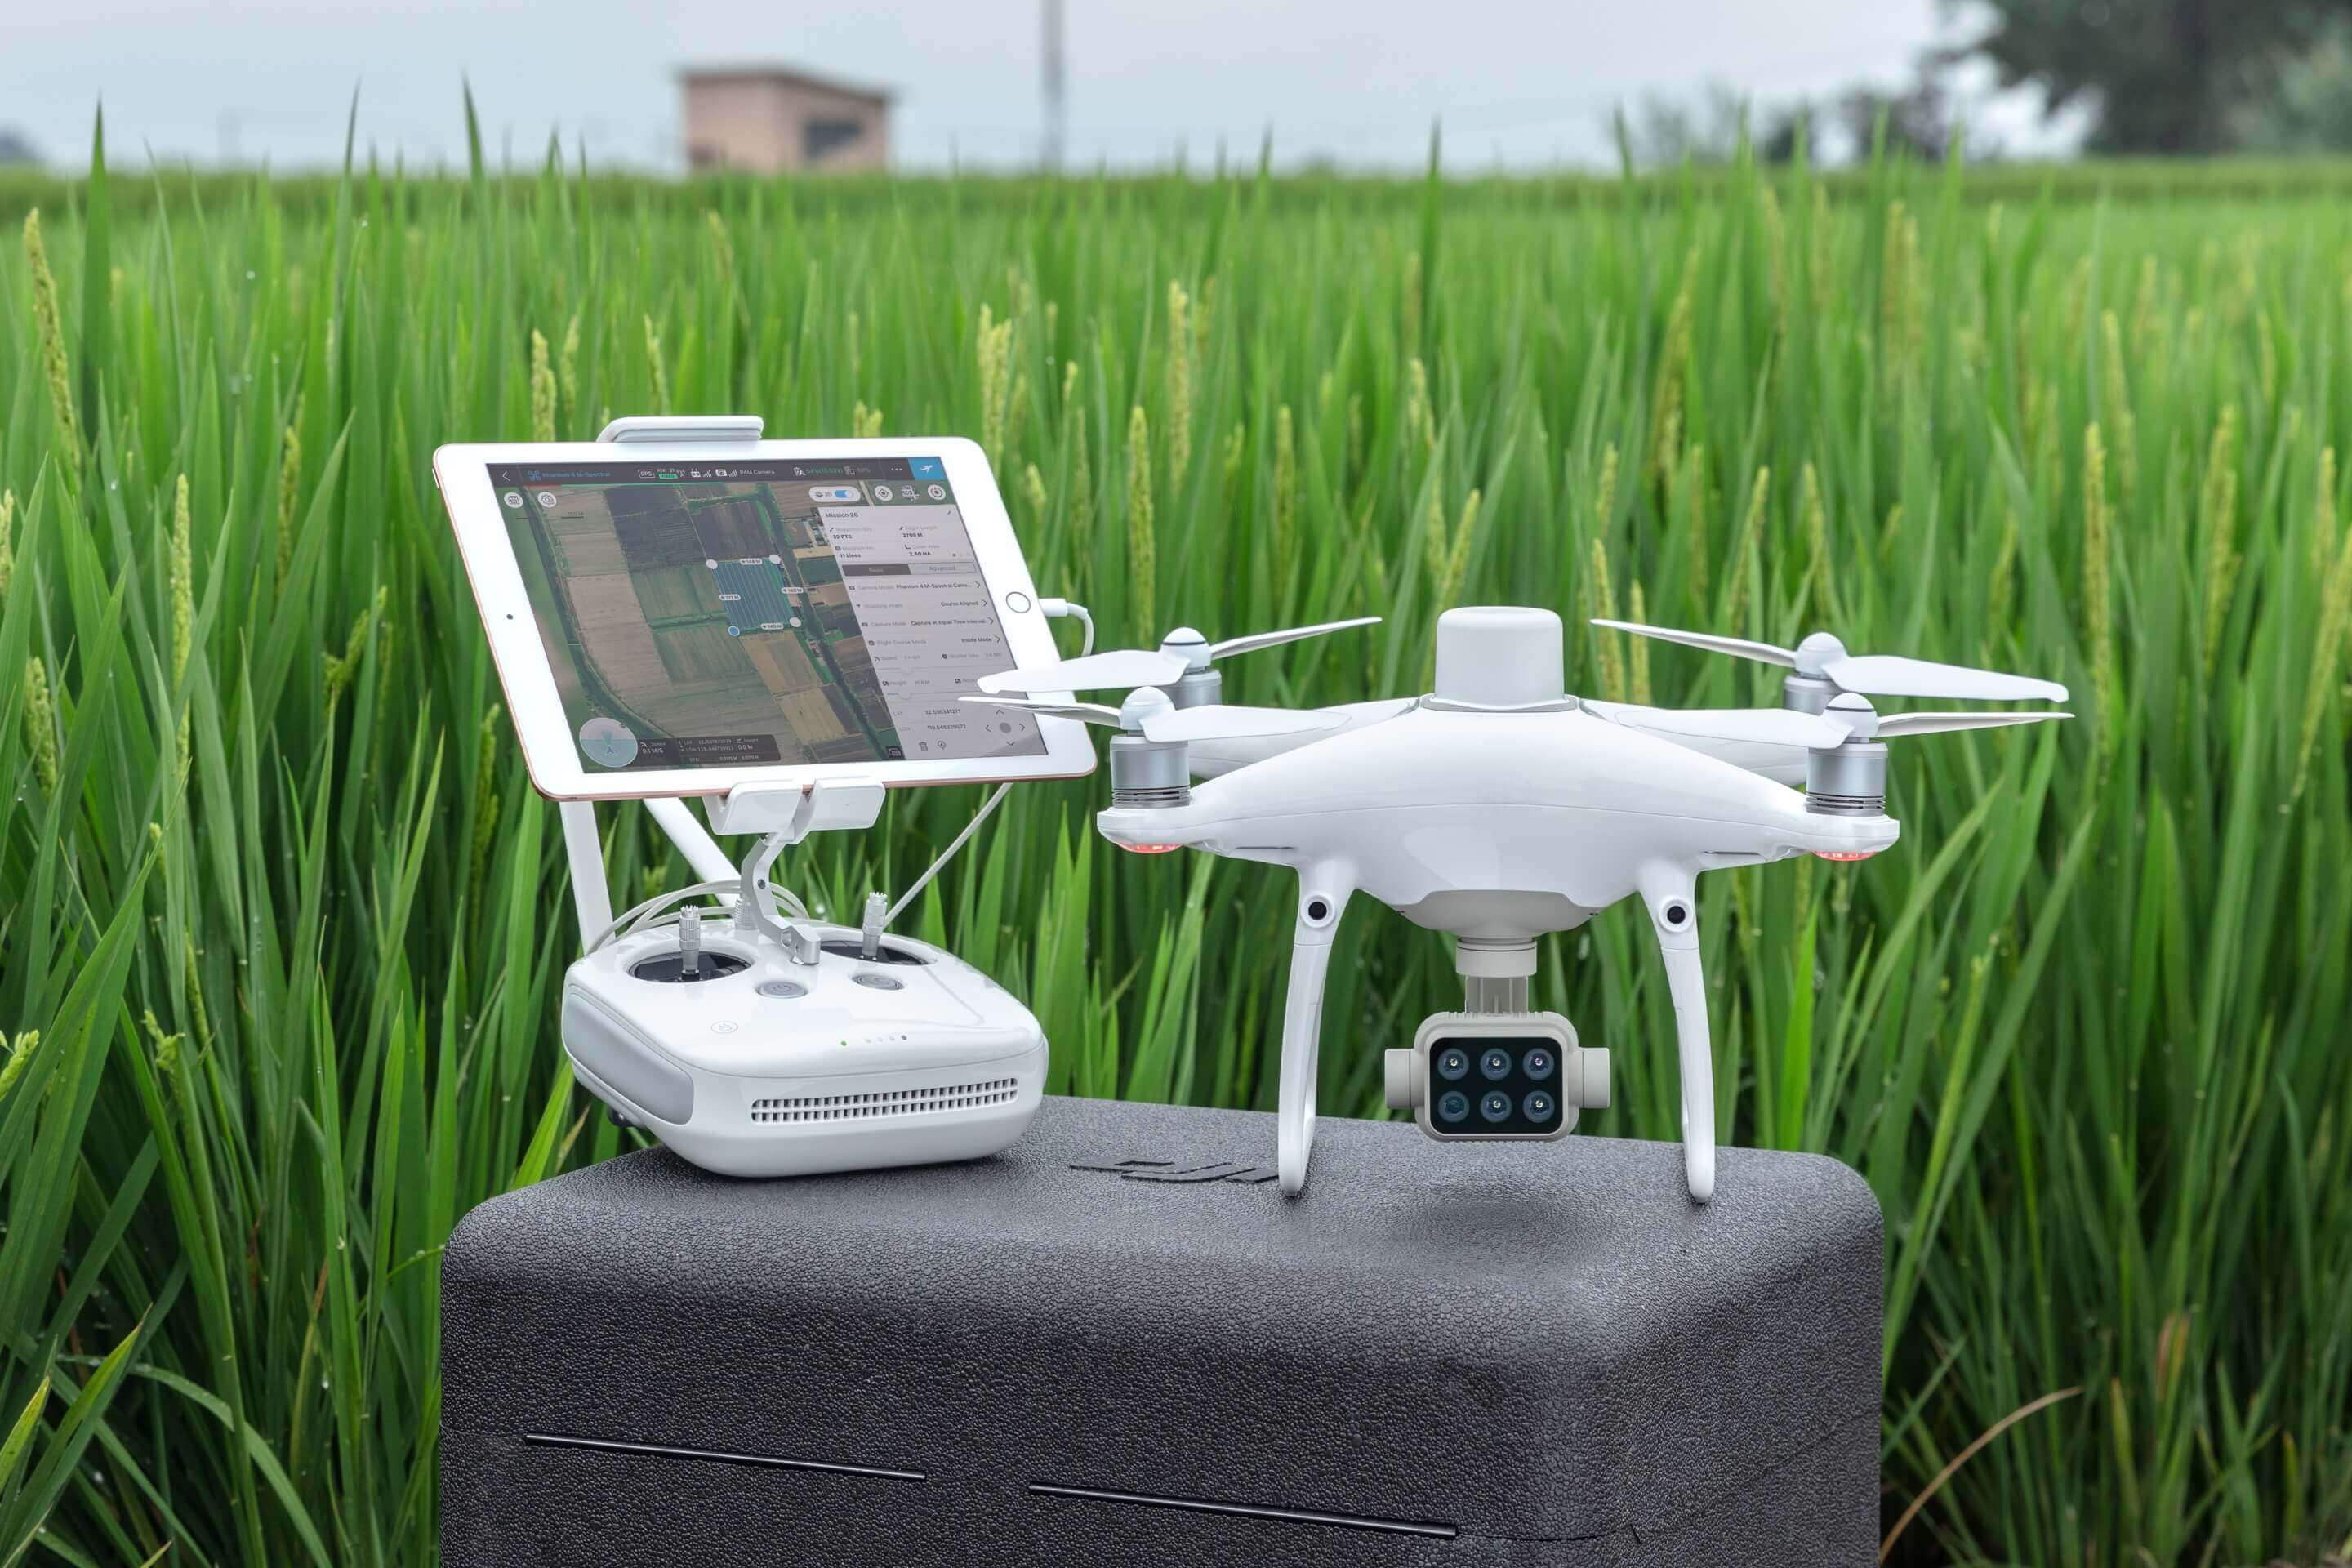 P4 Multispectral Agriculture Drone